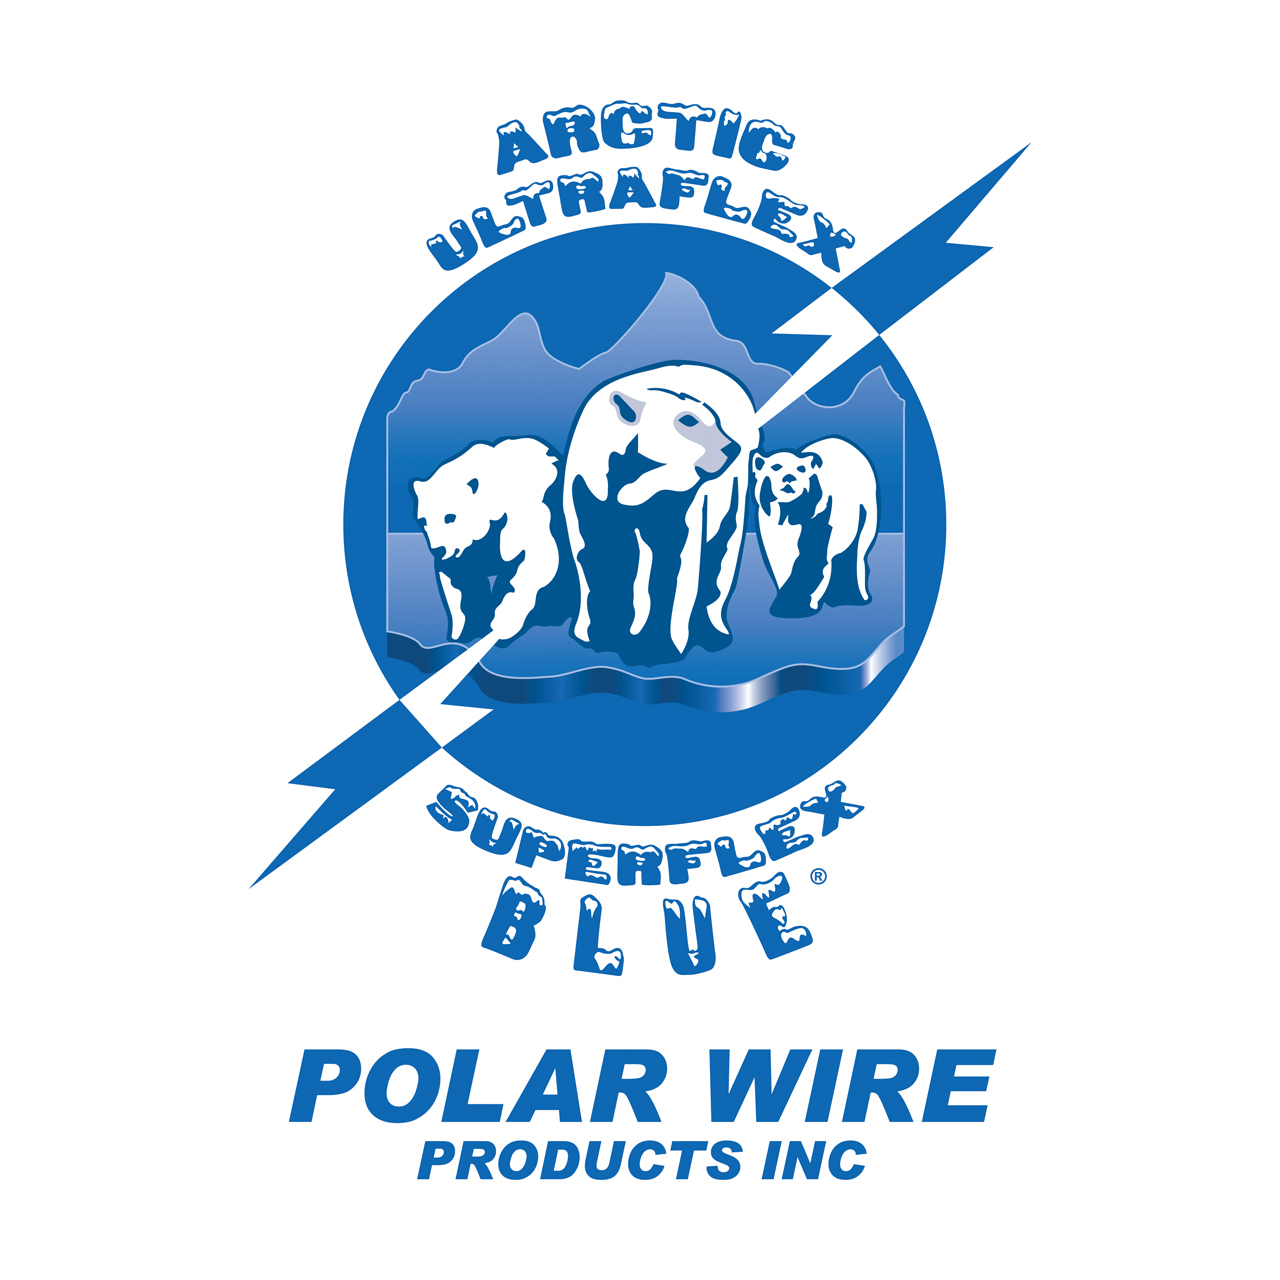 Polar Wire extension cords are made with three conductor -50C to 105C Arctic Ultraflex Blue Power Cord